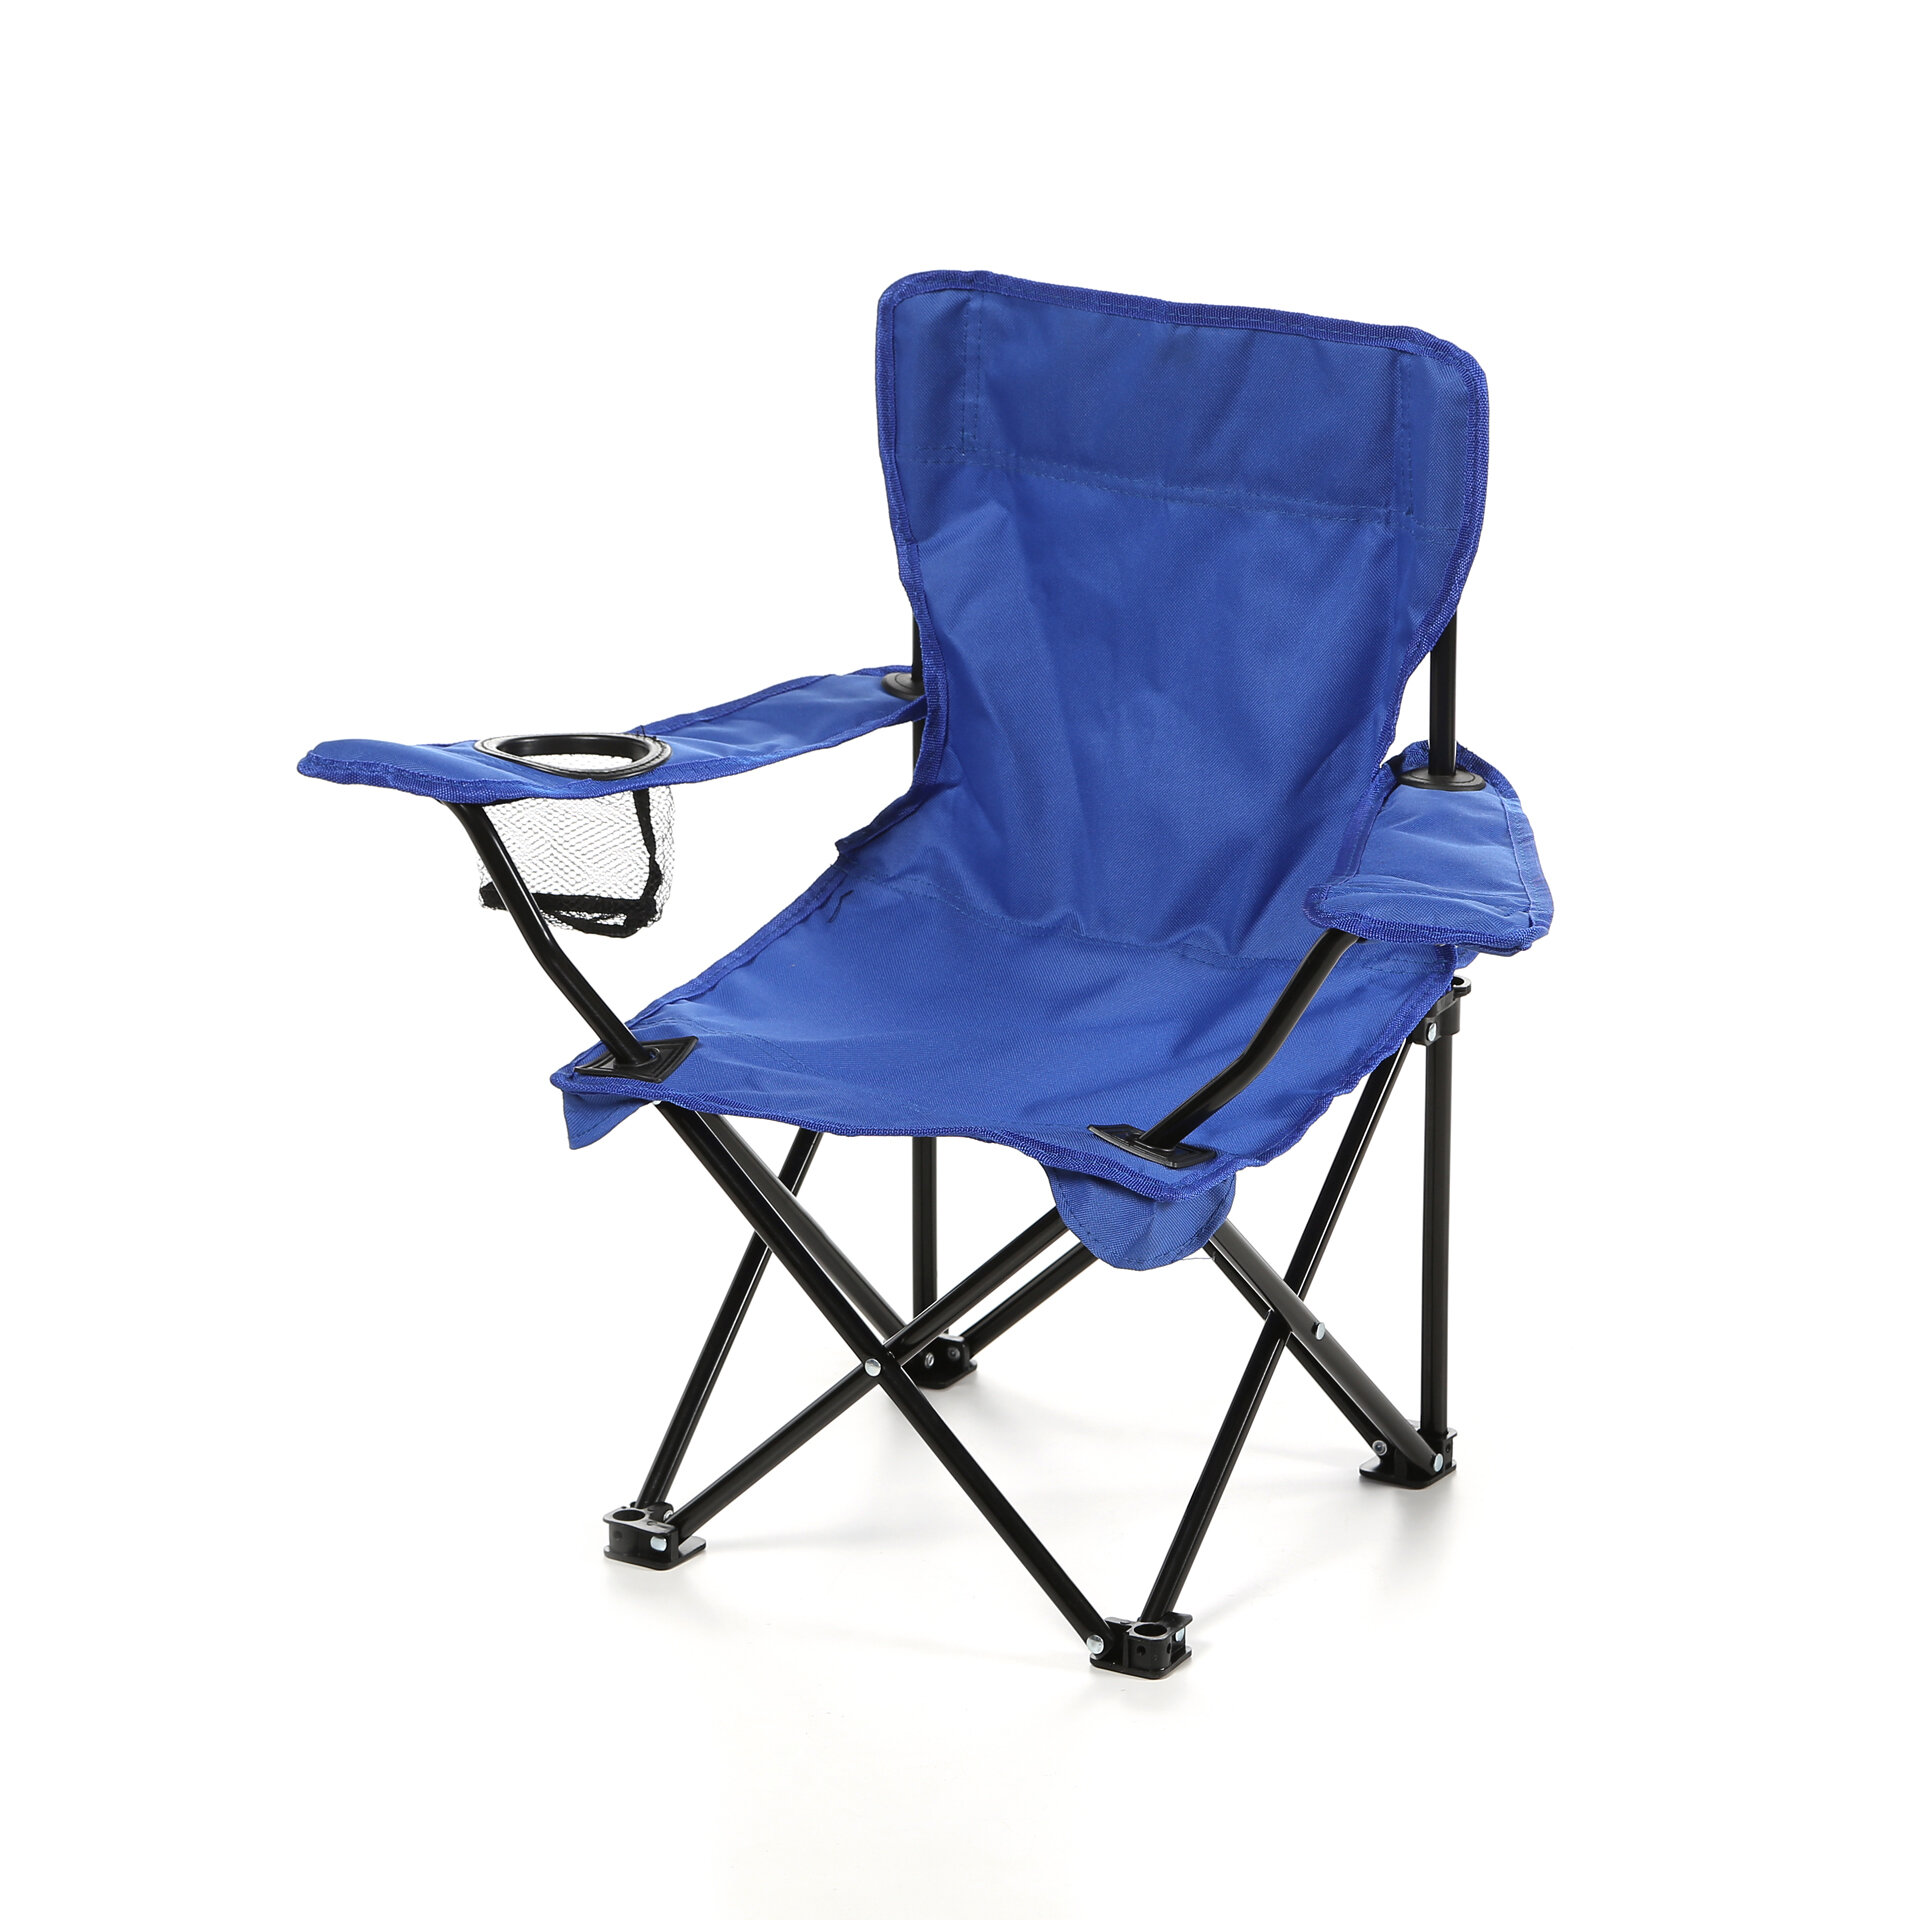 Remarkable Crenshaw Folding Kids Camping Chair With Cup Holder Pdpeps Interior Chair Design Pdpepsorg